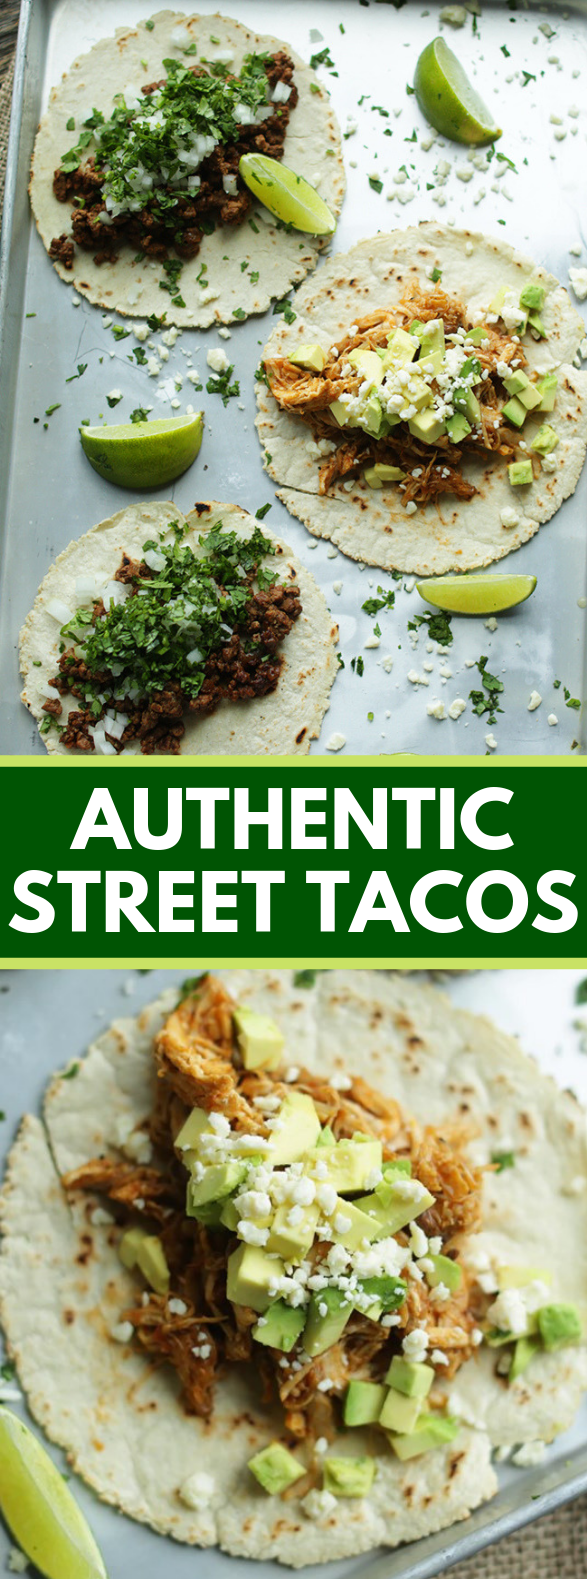 Authentic Street Taco Recipes #dinner #weeknightmeals